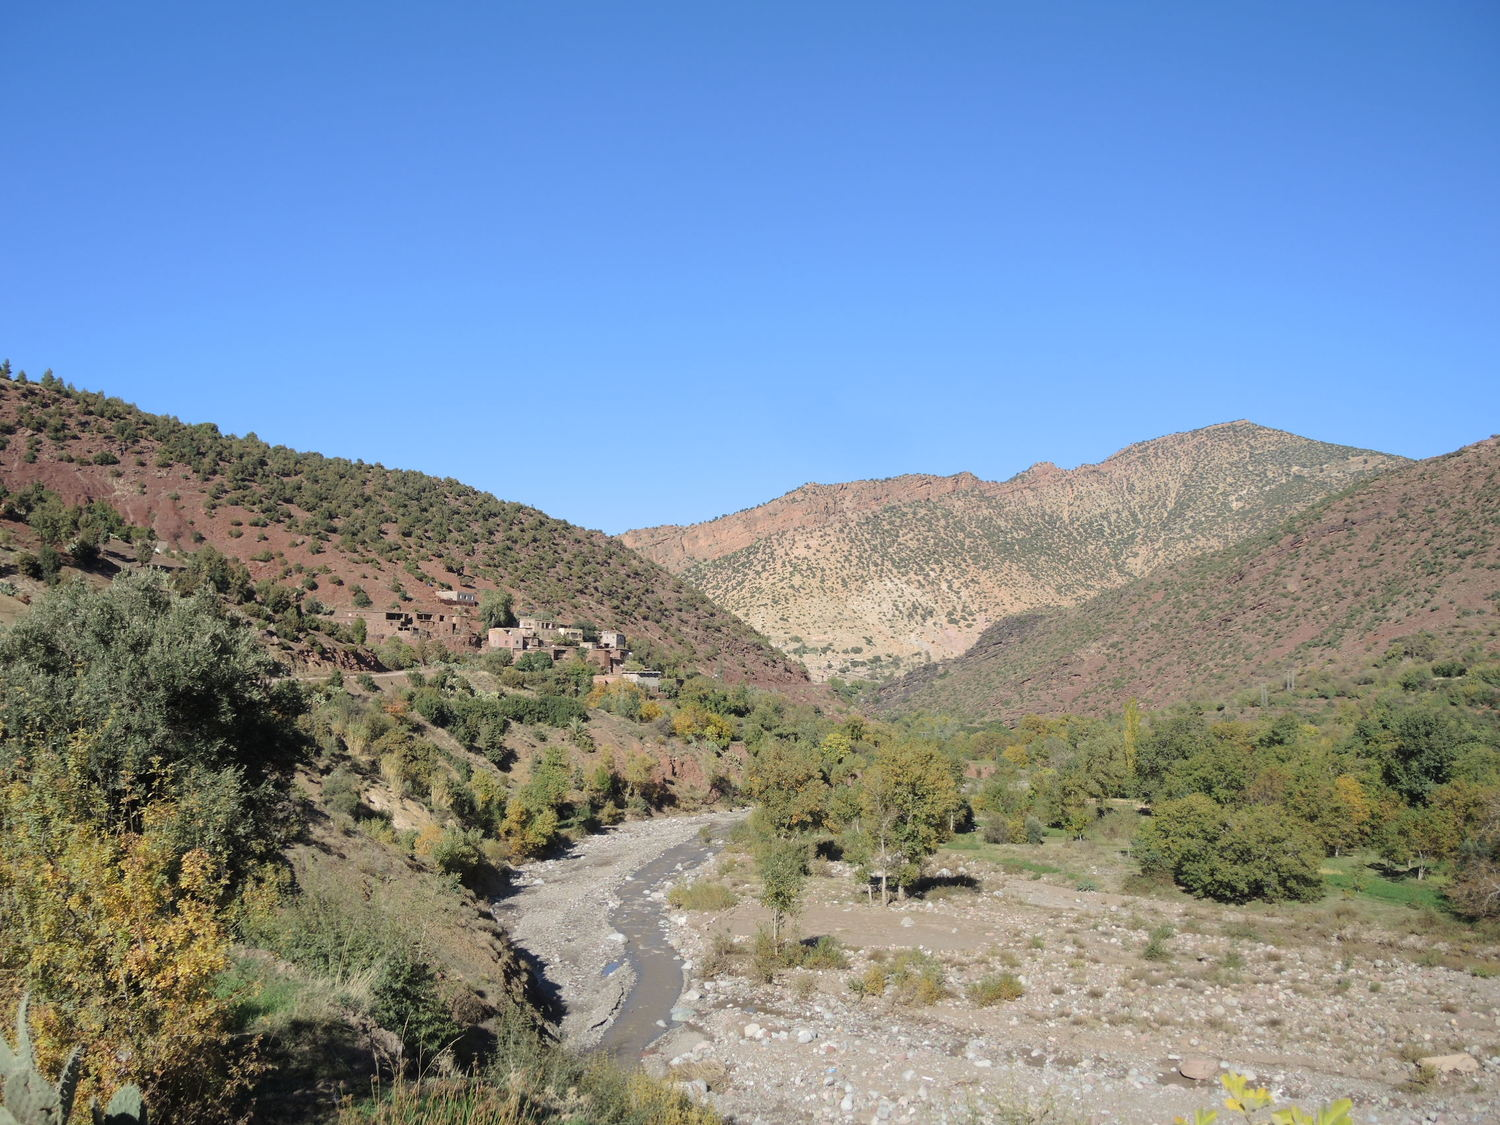 Road in Atlas Mountains